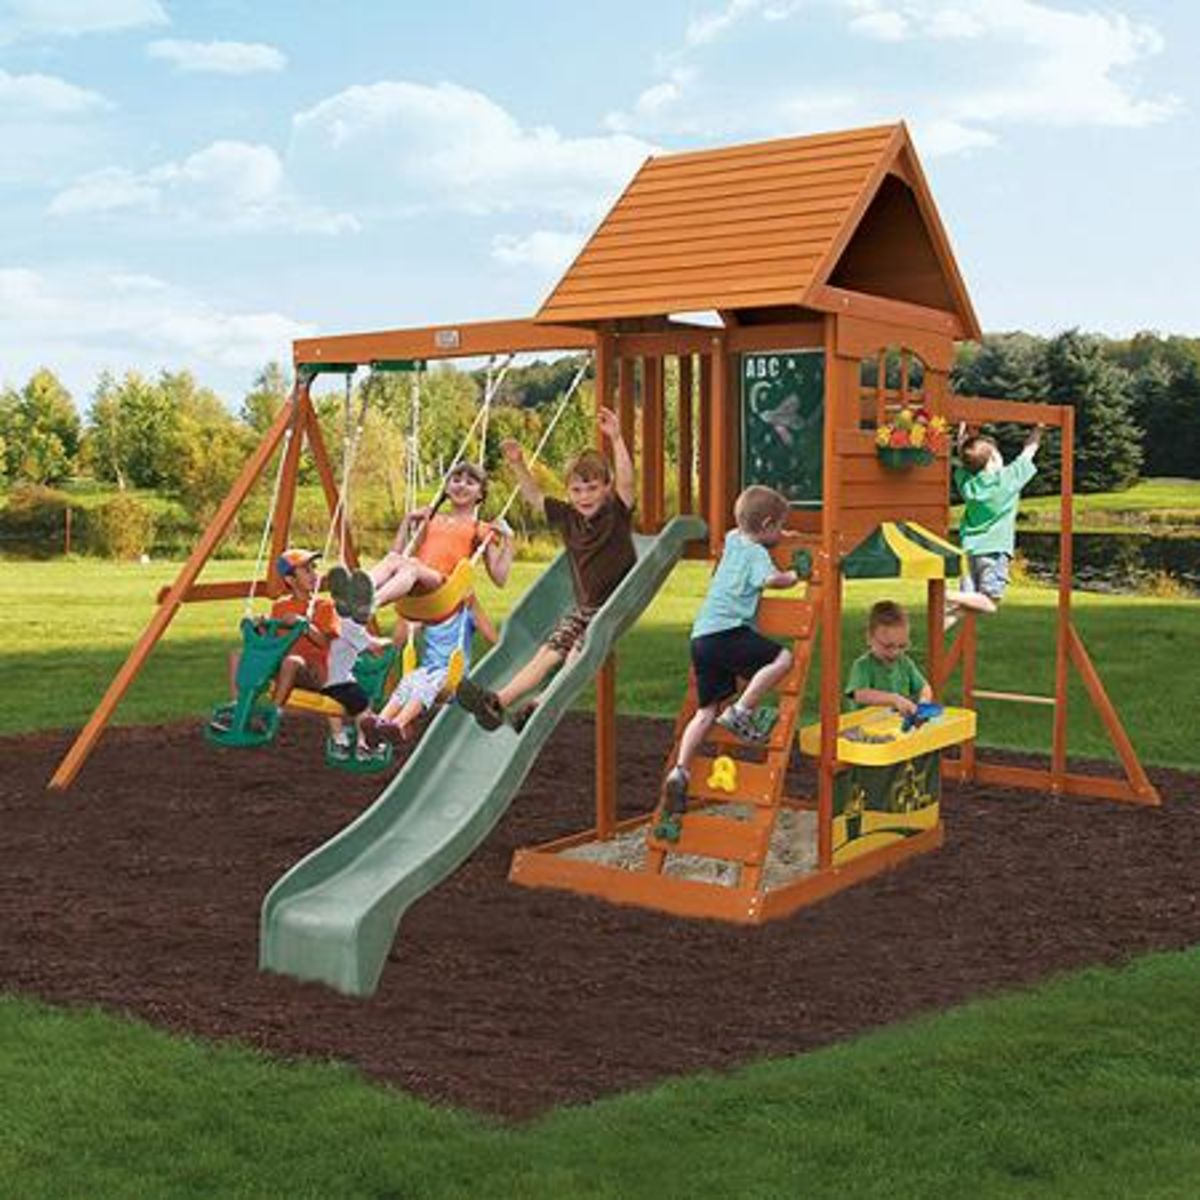 Best-Rated Wooden Backyard Swing Sets For Older Kids On Sale - Reviews And Ratings | A Listly List